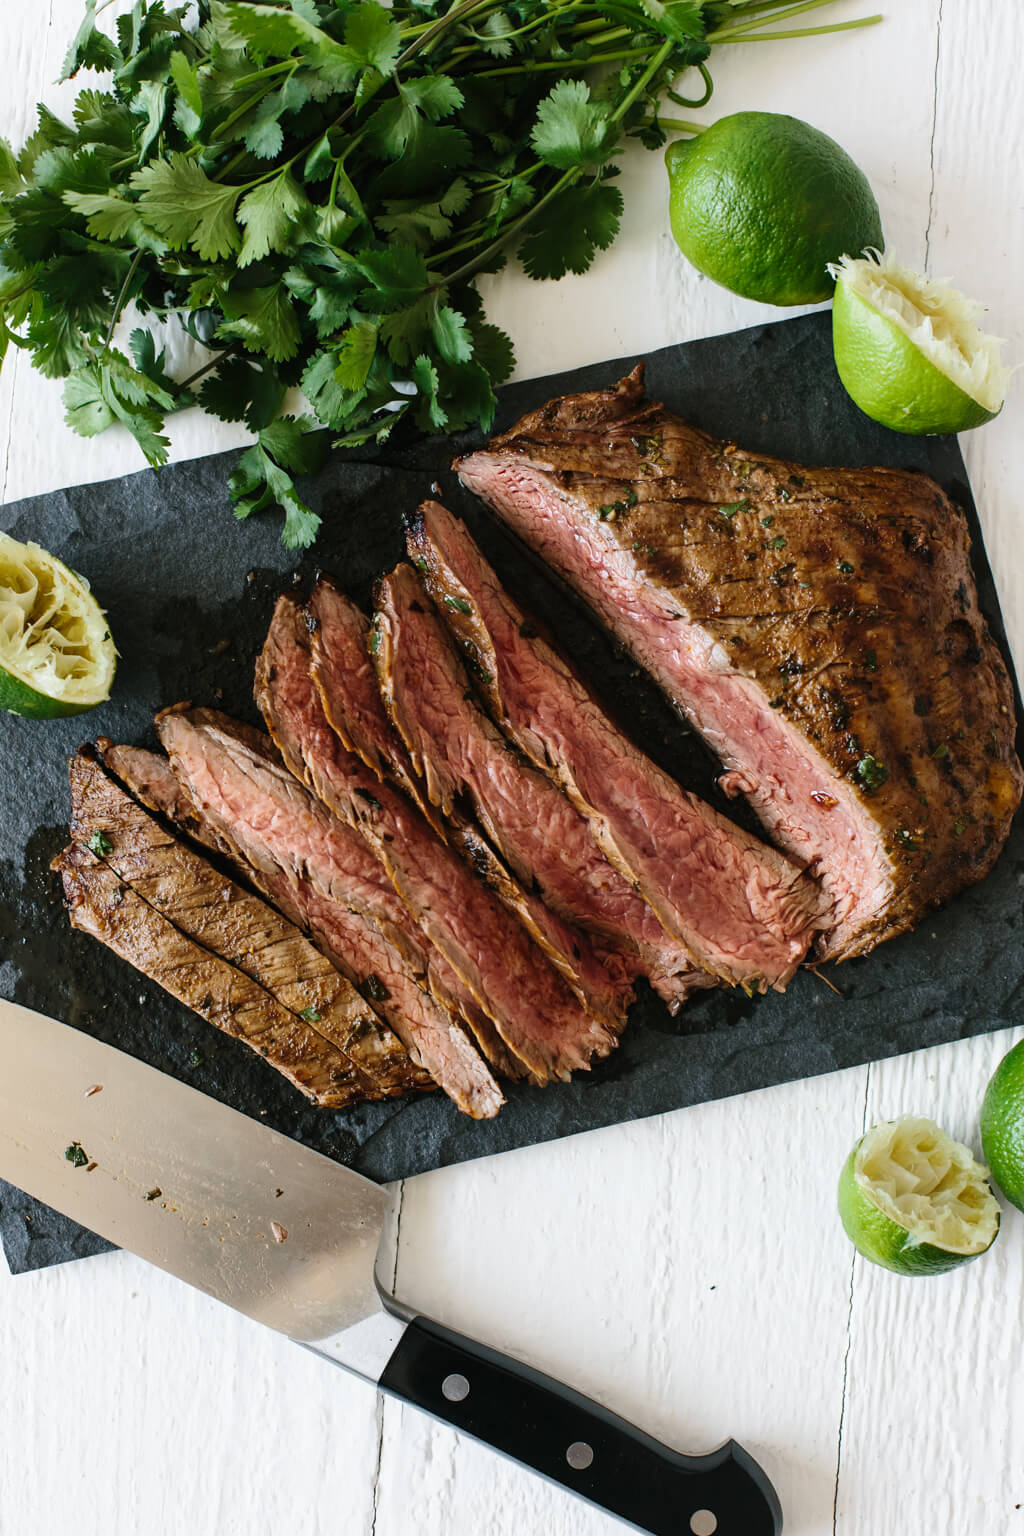 An easy, delicious and flavorful carne asada recipe. When it comes to authentic carne asada you'd find in Mexico, this comes pretty darn close!